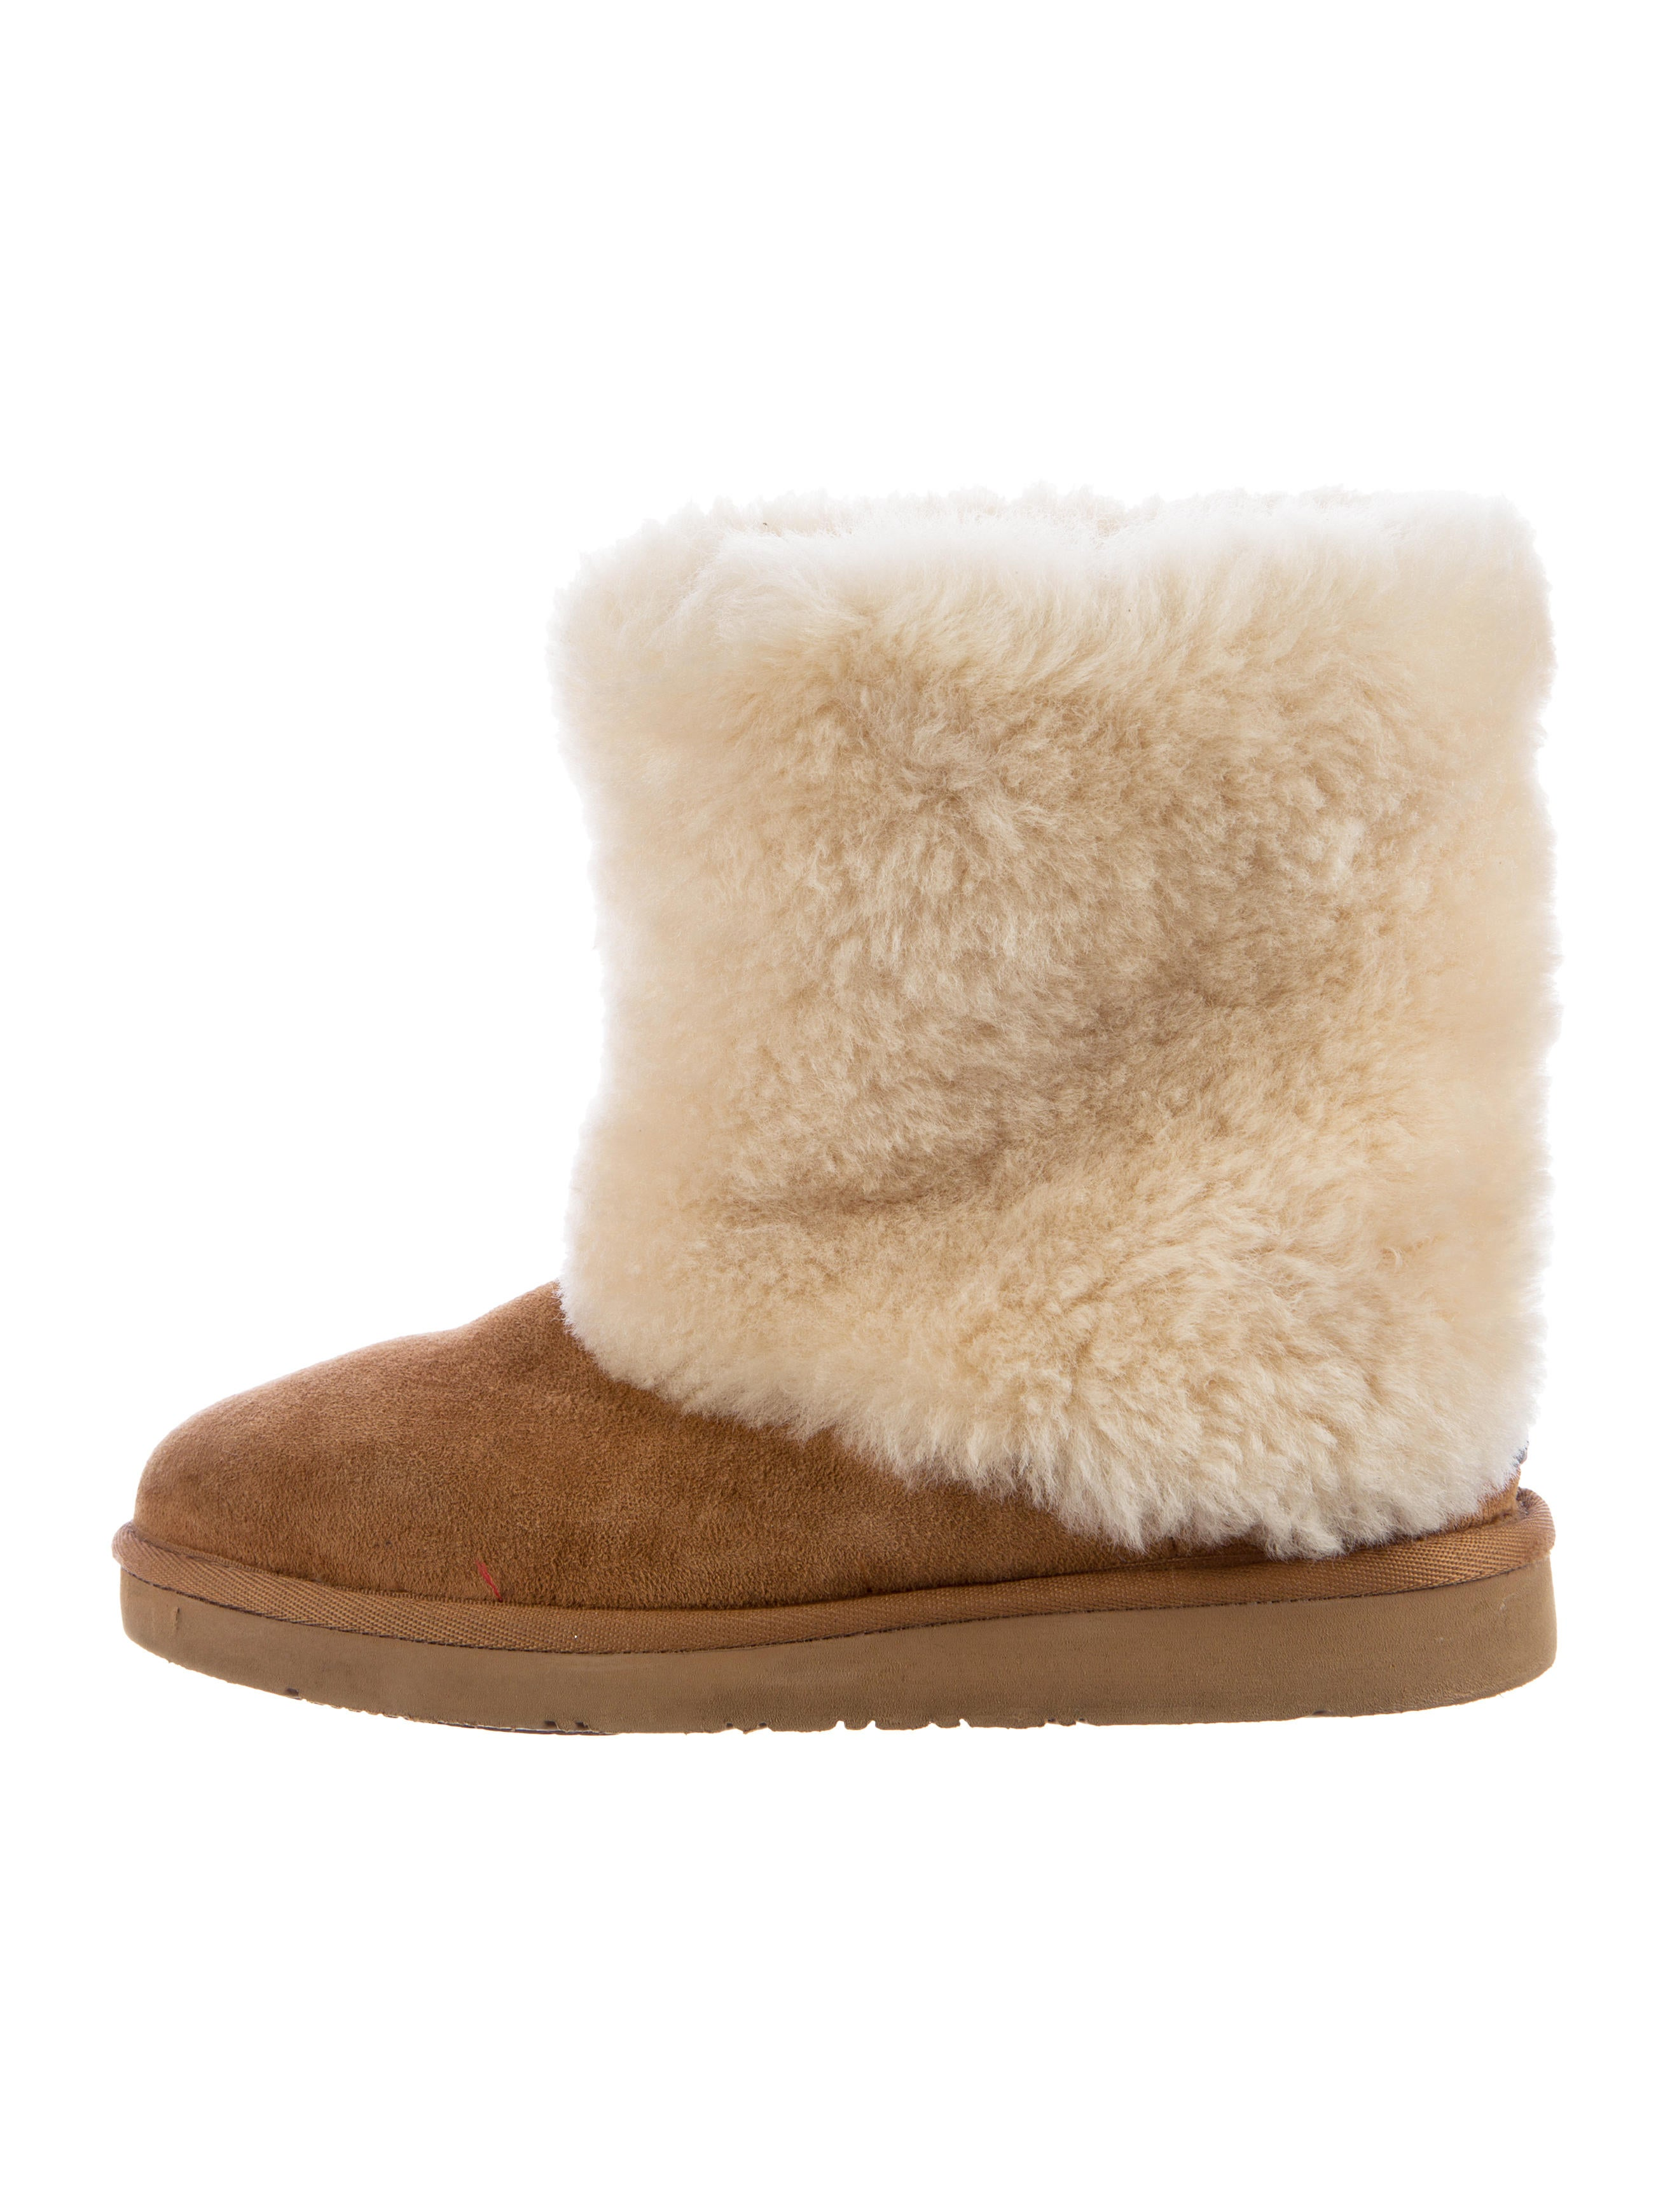 UGG Australia Patten Shearling Boots Shoes WUUGG21994